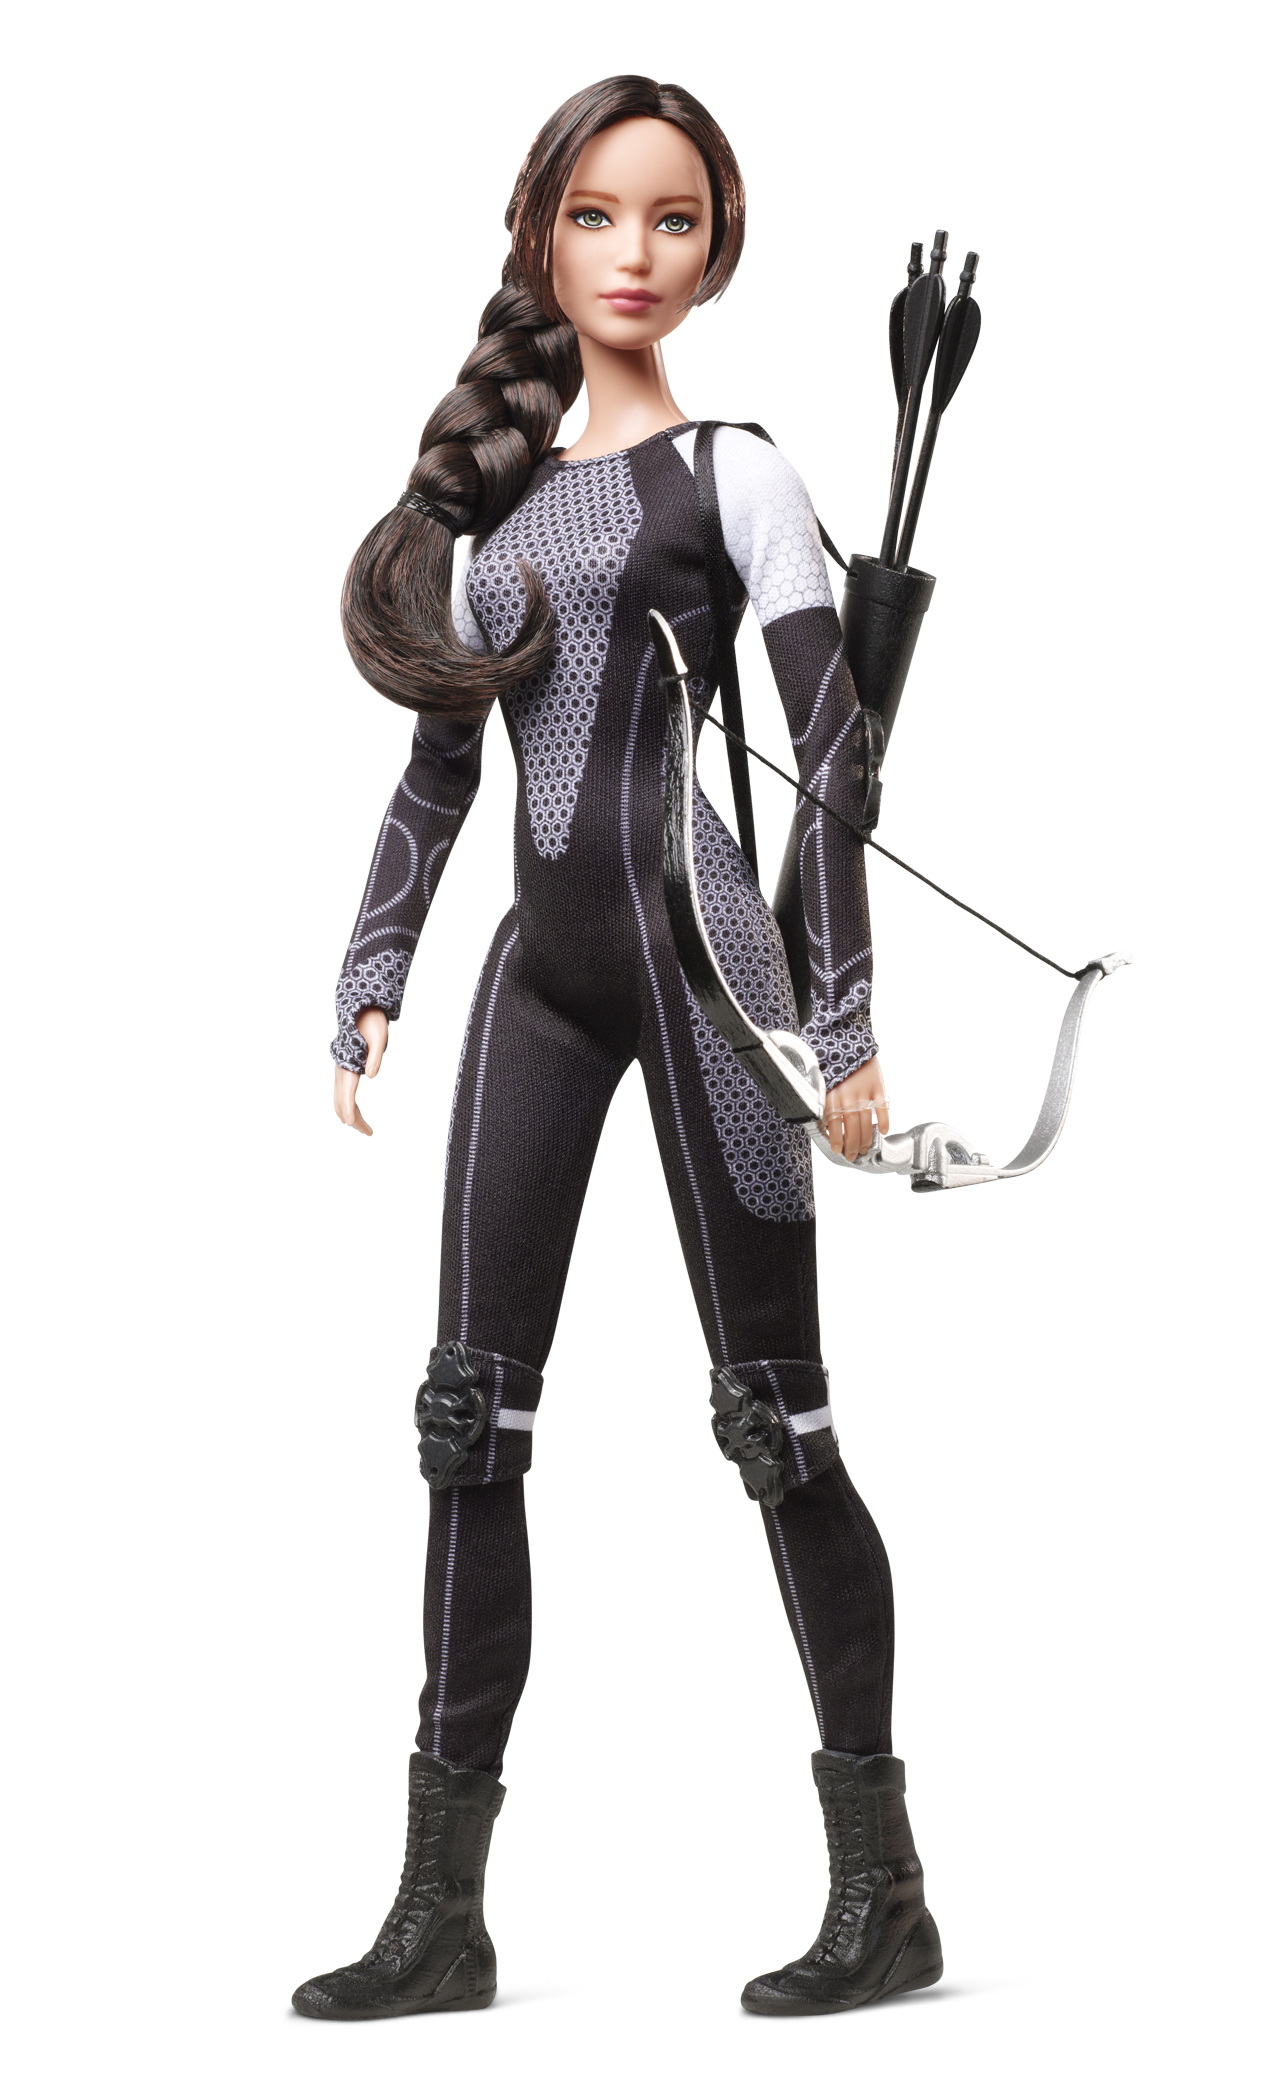 The Hunger Games: Catching Fire  Katniss Barbie, released in 2013.